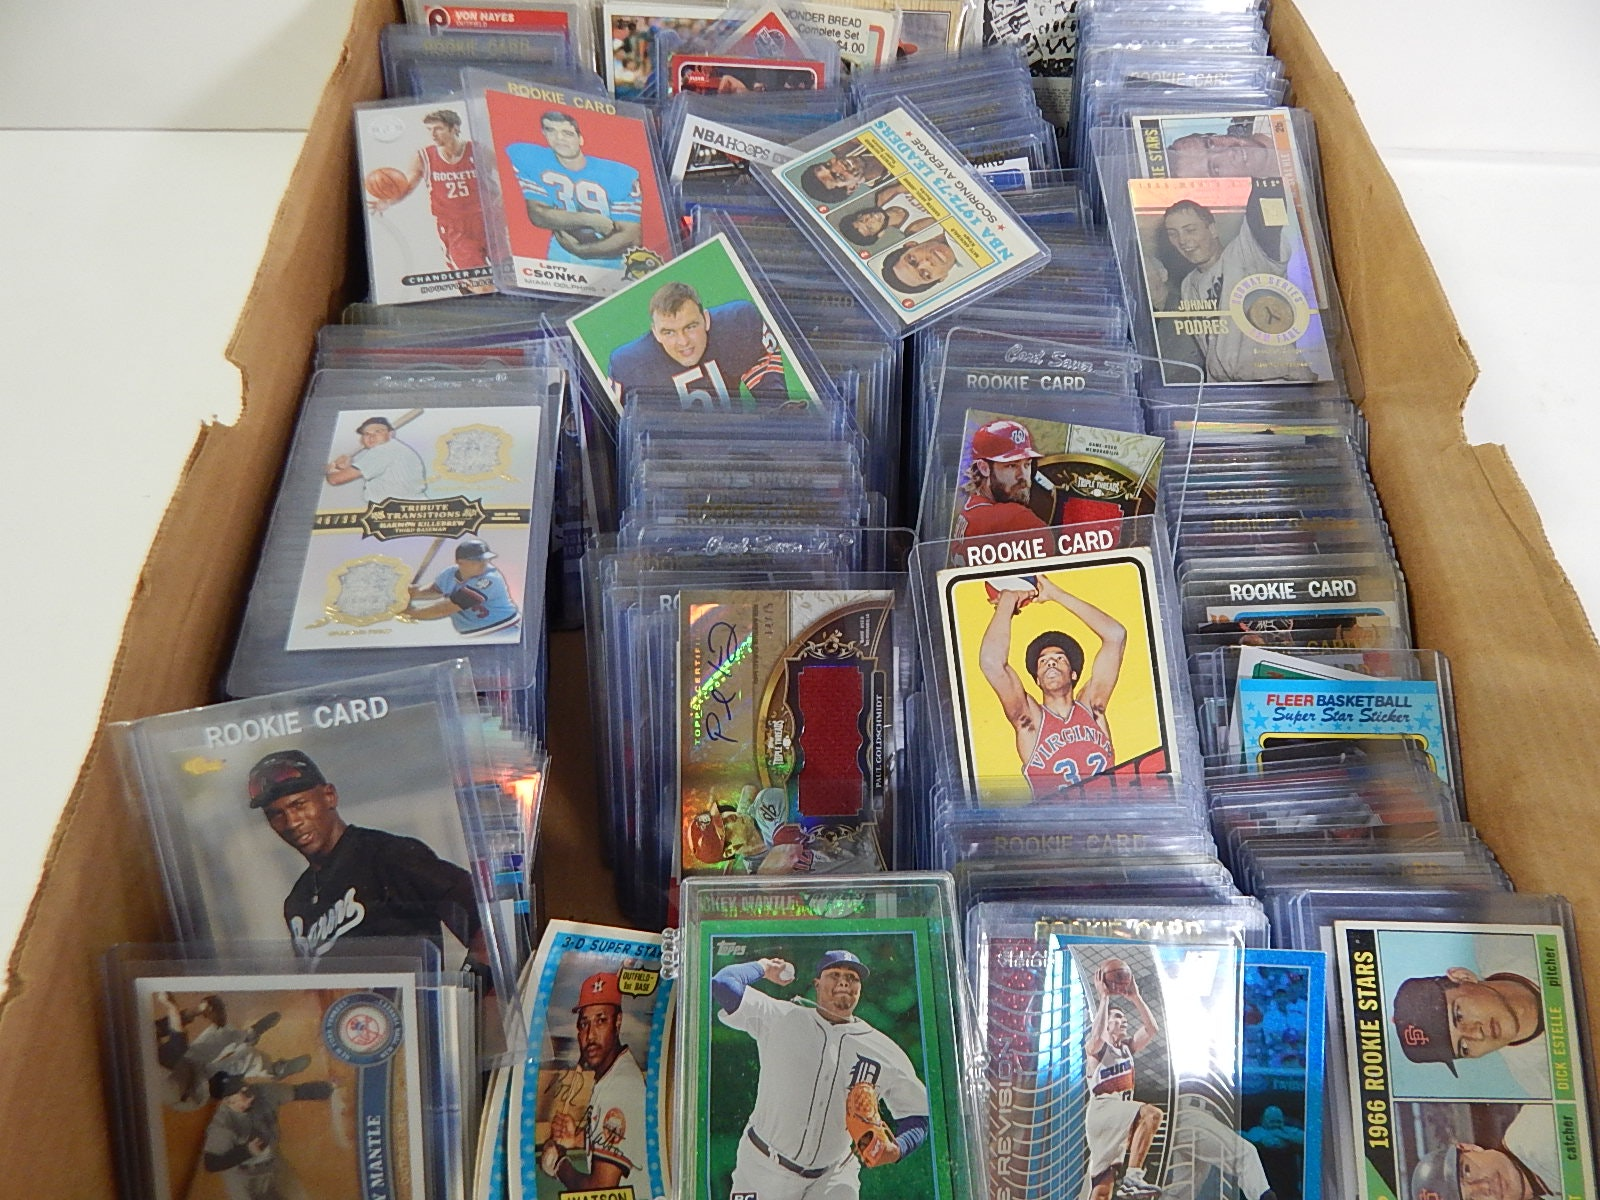 Box of Mostly Top Loaded Baseball, Basketball, Football Cards 1970s and Up